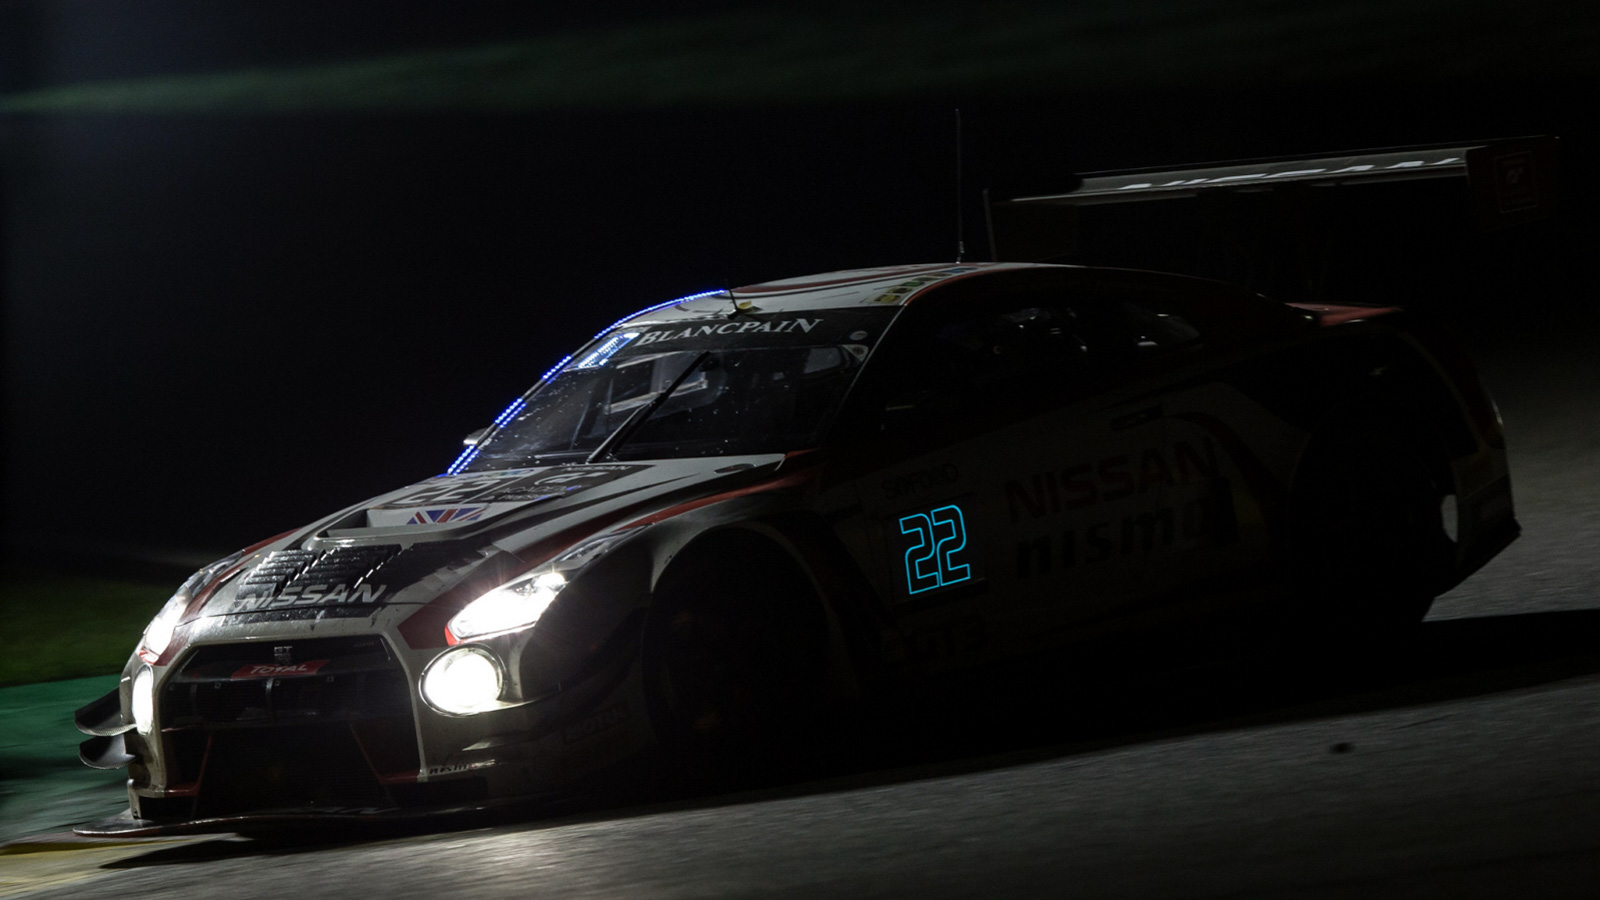 Walkinshaw 'Very Happy' to Post Hard-Earned Total 24 Hours of SPA Finish with Nissan GT Academy